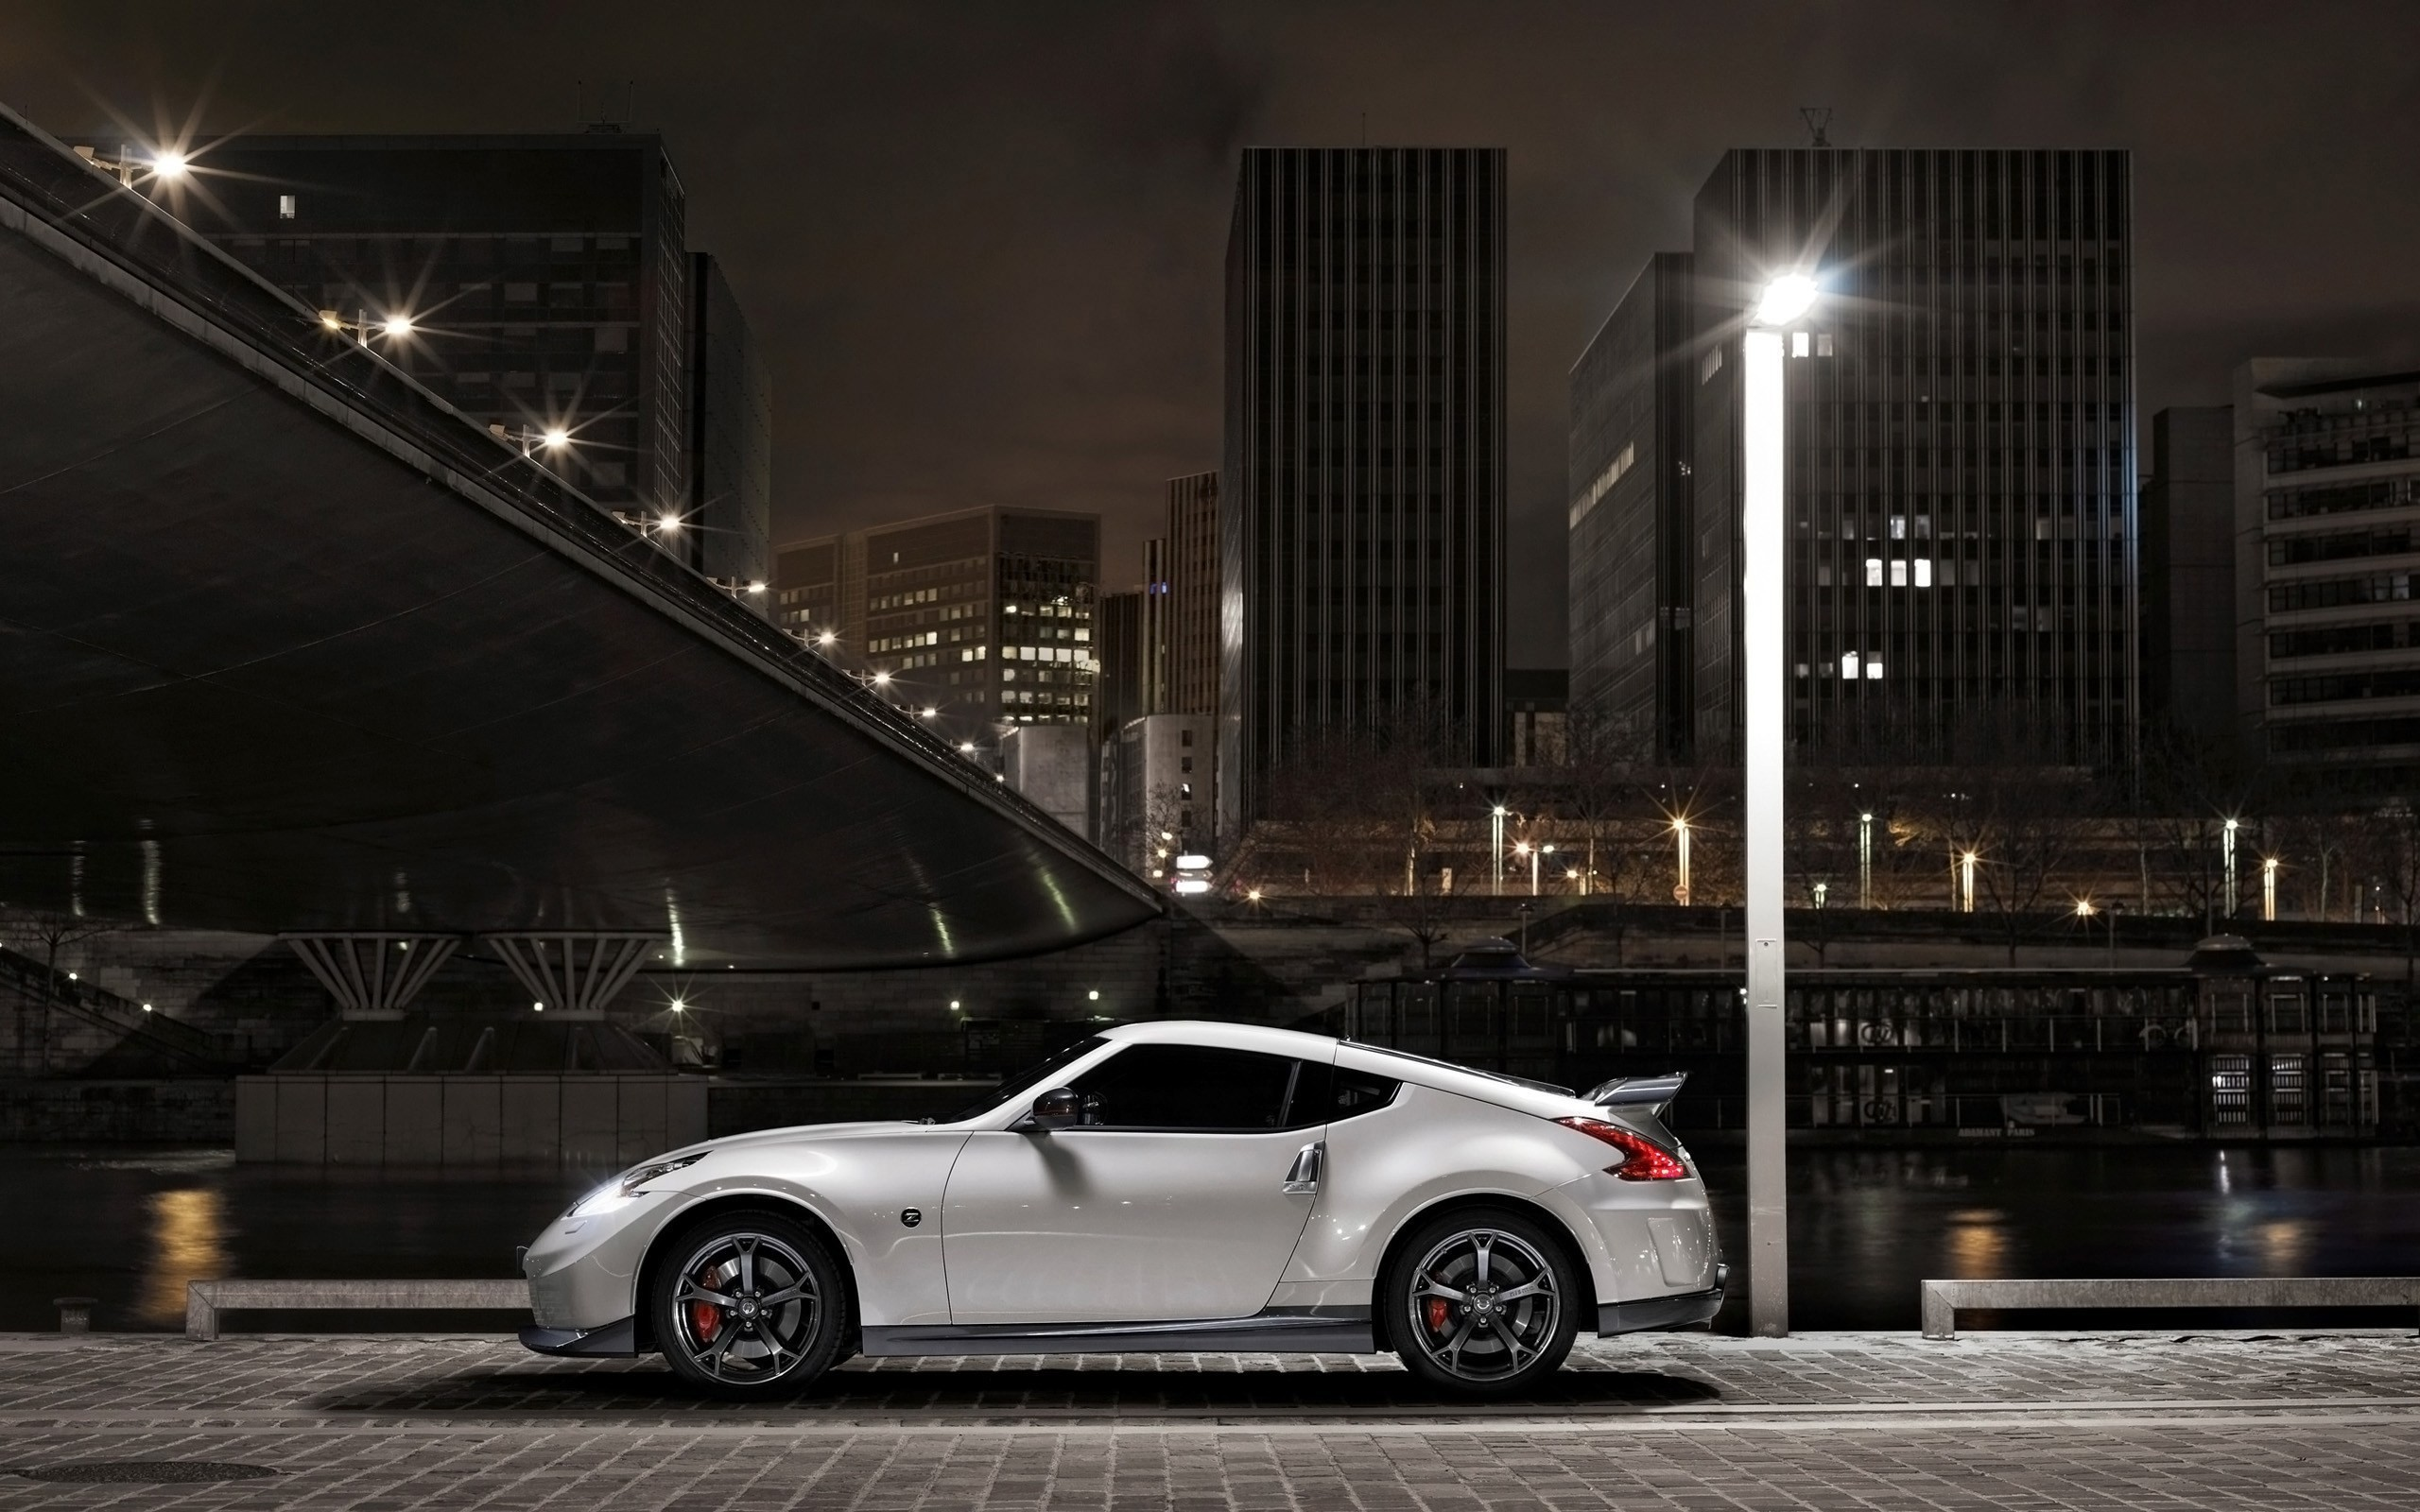 Res: 2560x1600, 2014 Nissan 370z Nismo 2 Wallpaper Hd Car Wallpapers Id 4034